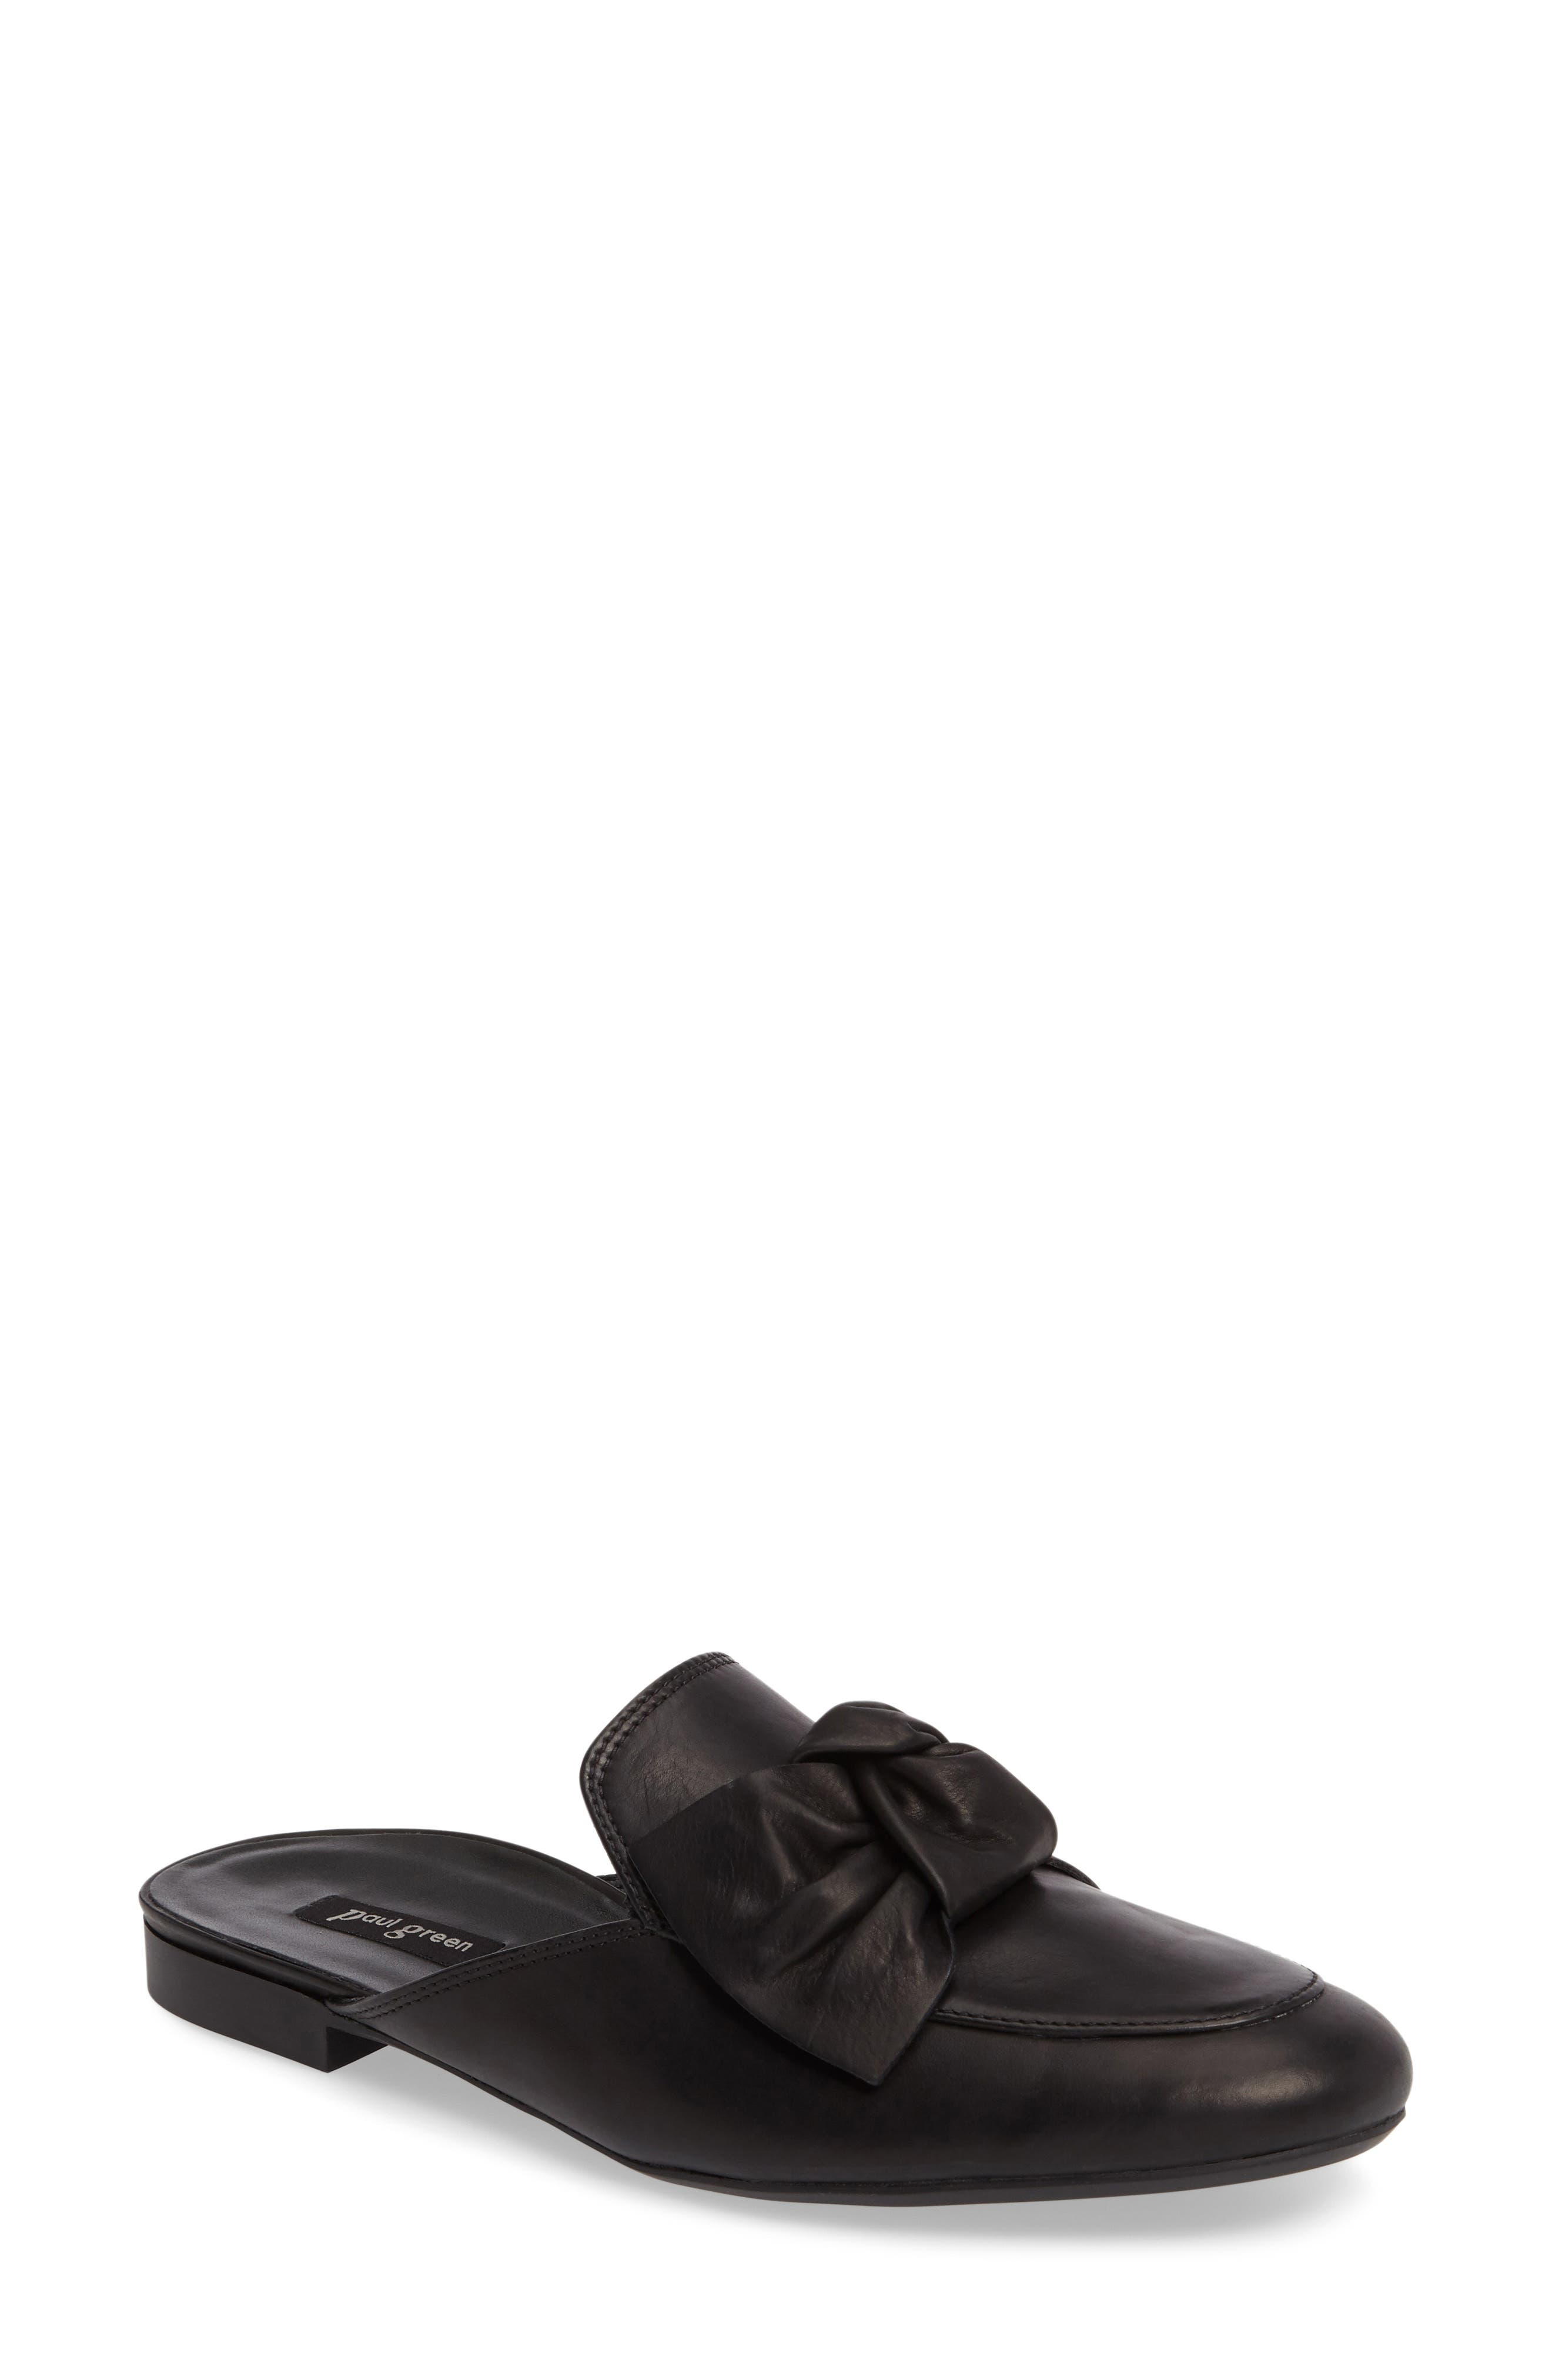 Mary Bow Mule Loafer,                             Main thumbnail 1, color,                             Black Leather